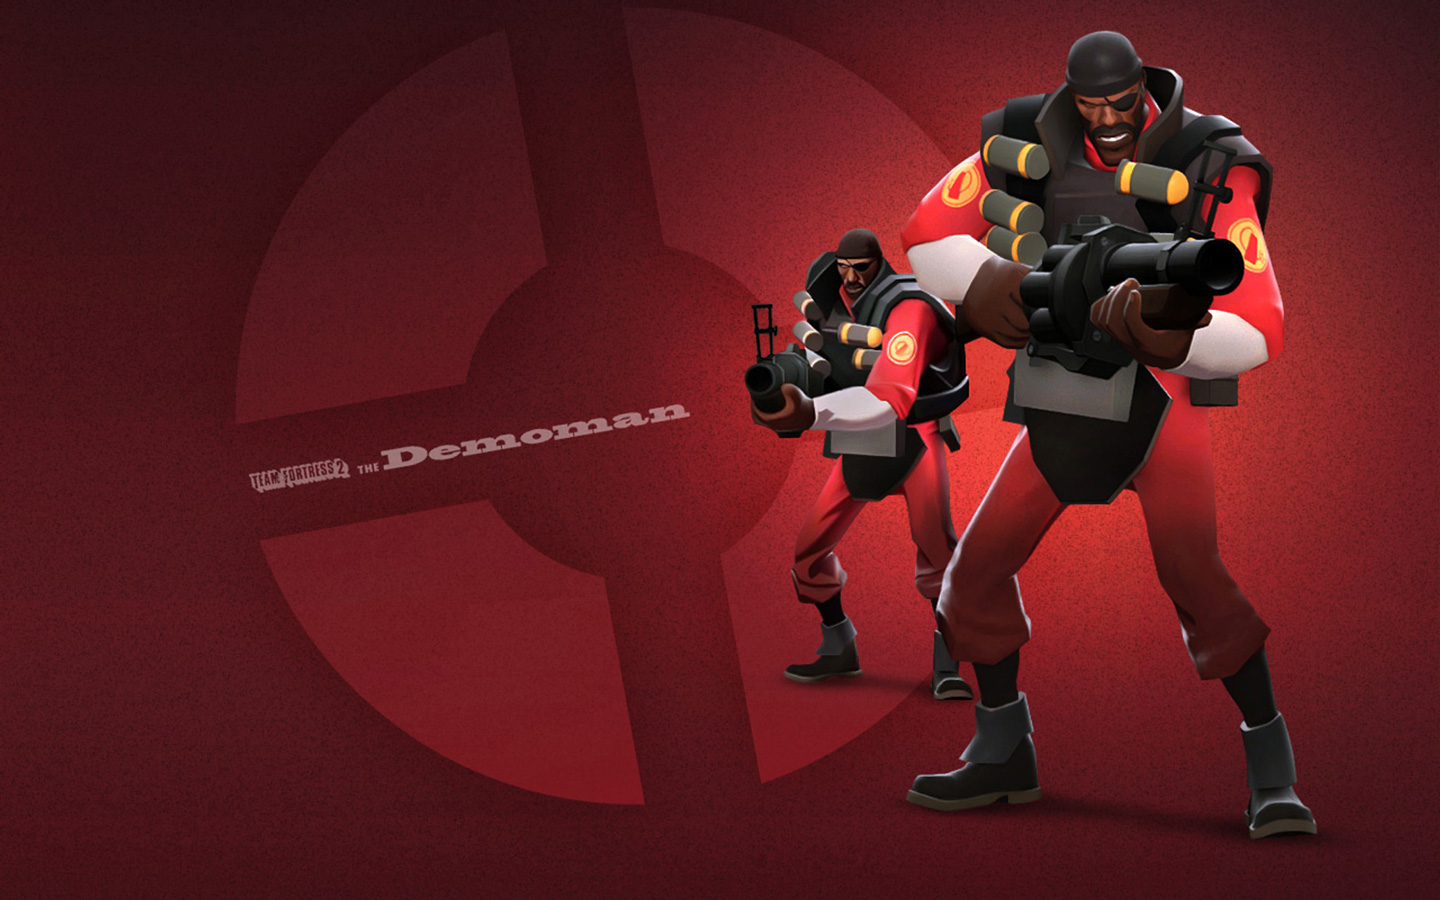 Team Fortress 2 Wallpaper in 1440x900